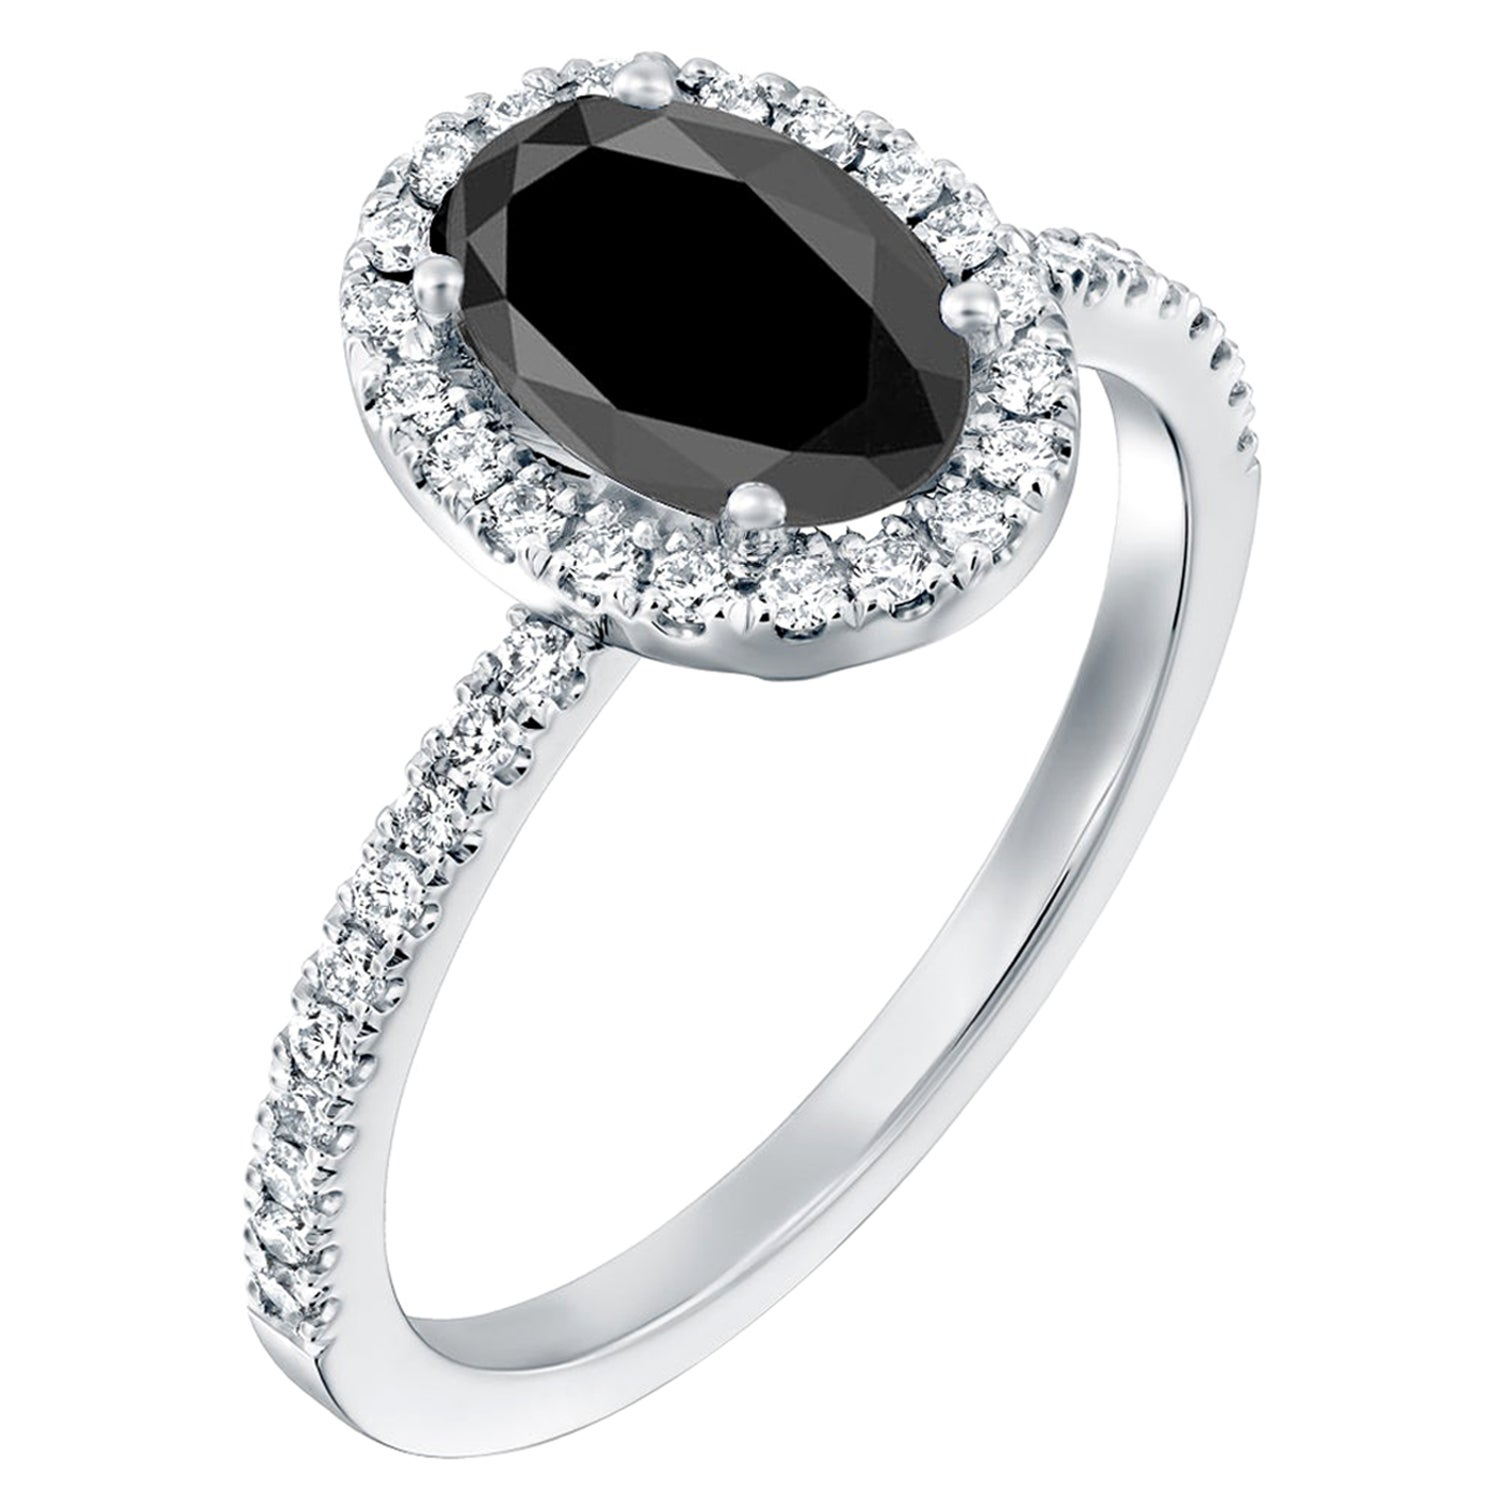 2.5 Carat 14 Karat White Gold Certified Oval Black Diamond Engagement Ring